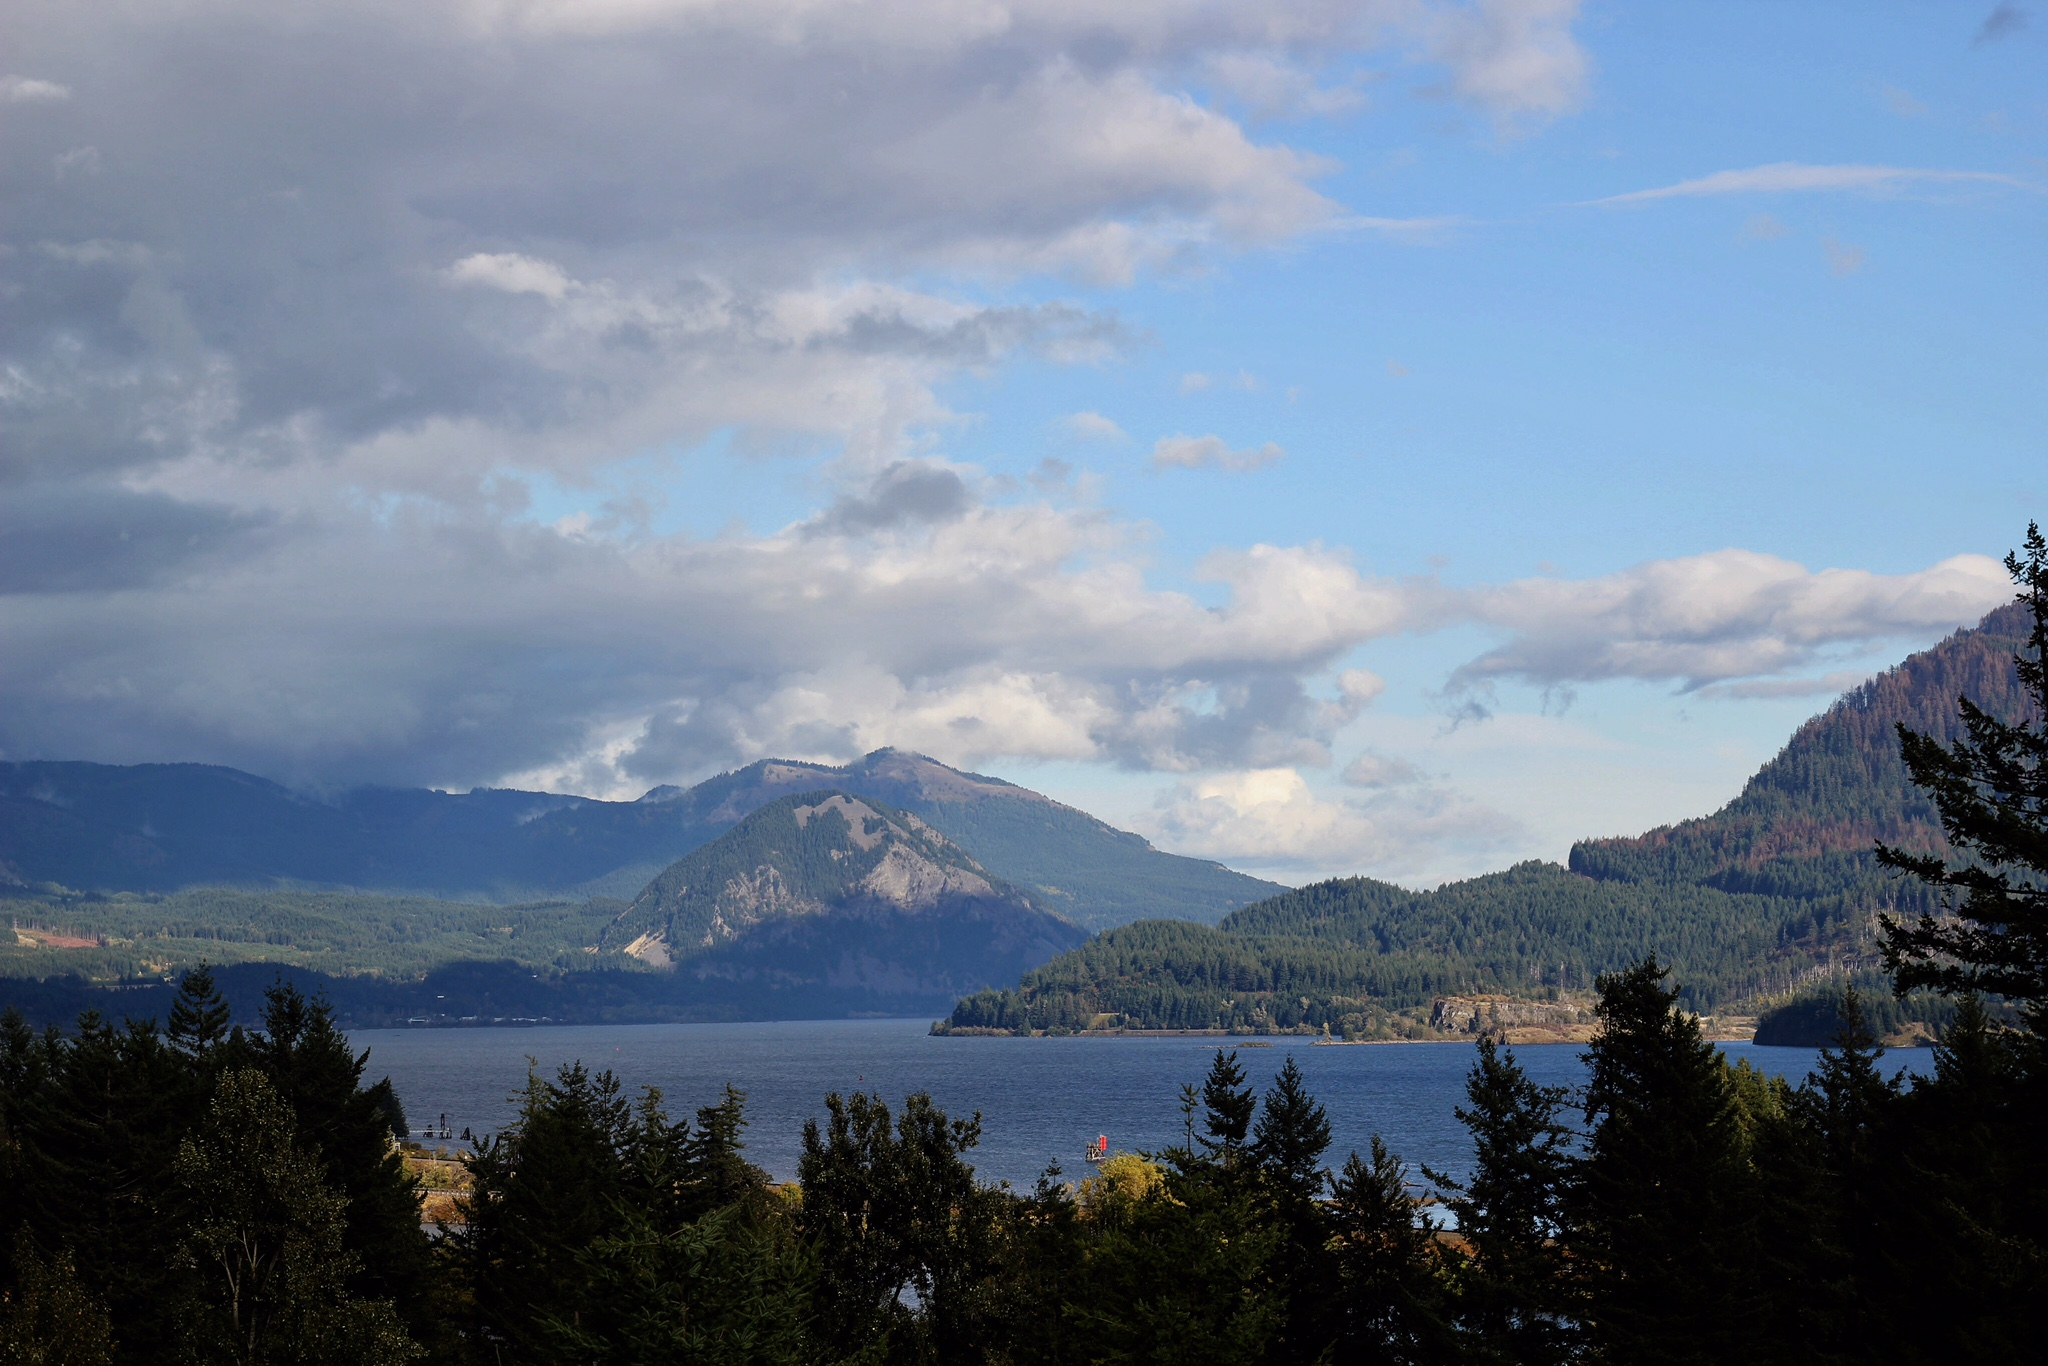 View of The Gorge from hotel room at Skamania Lodge, Copyright Nicole Burron